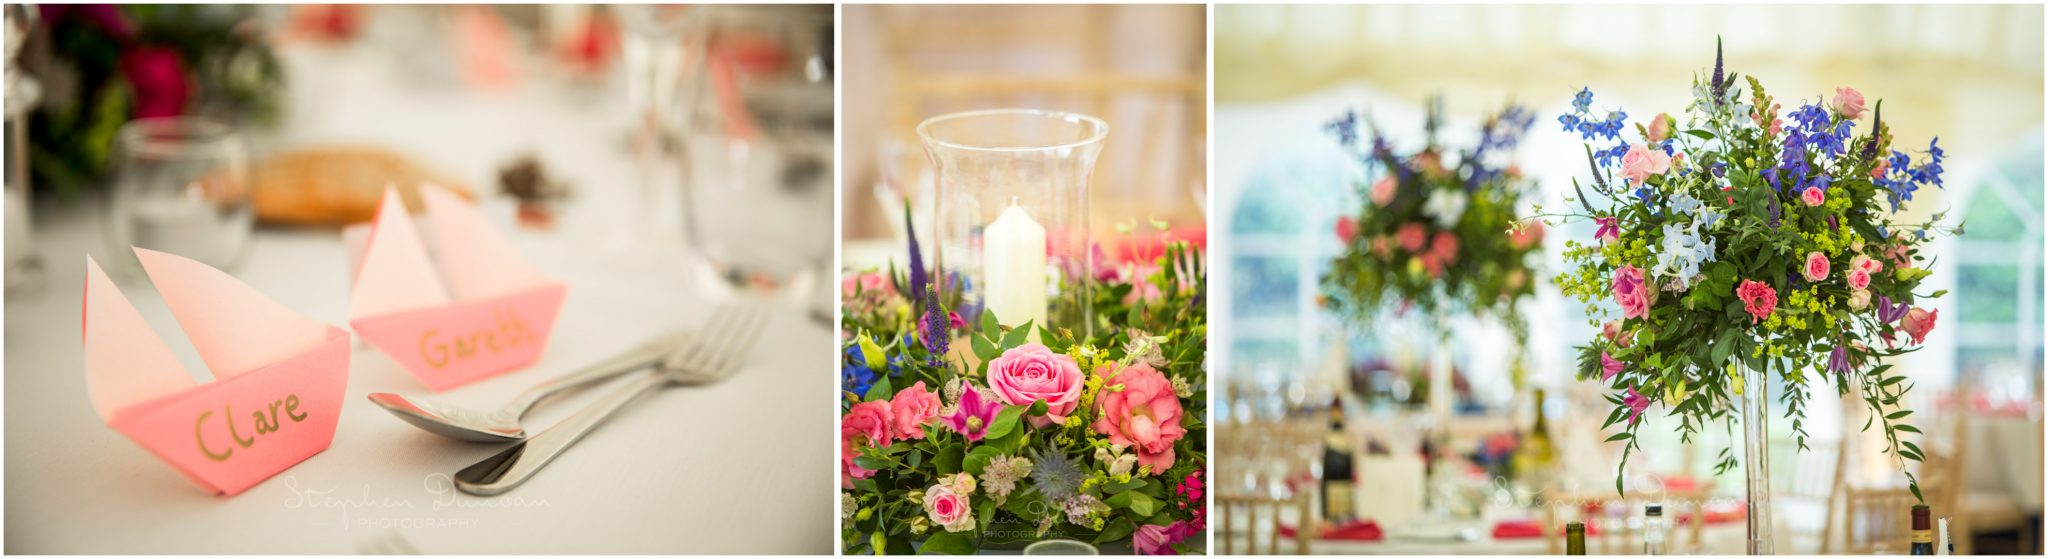 Lymington wedding photography reception marquee table details